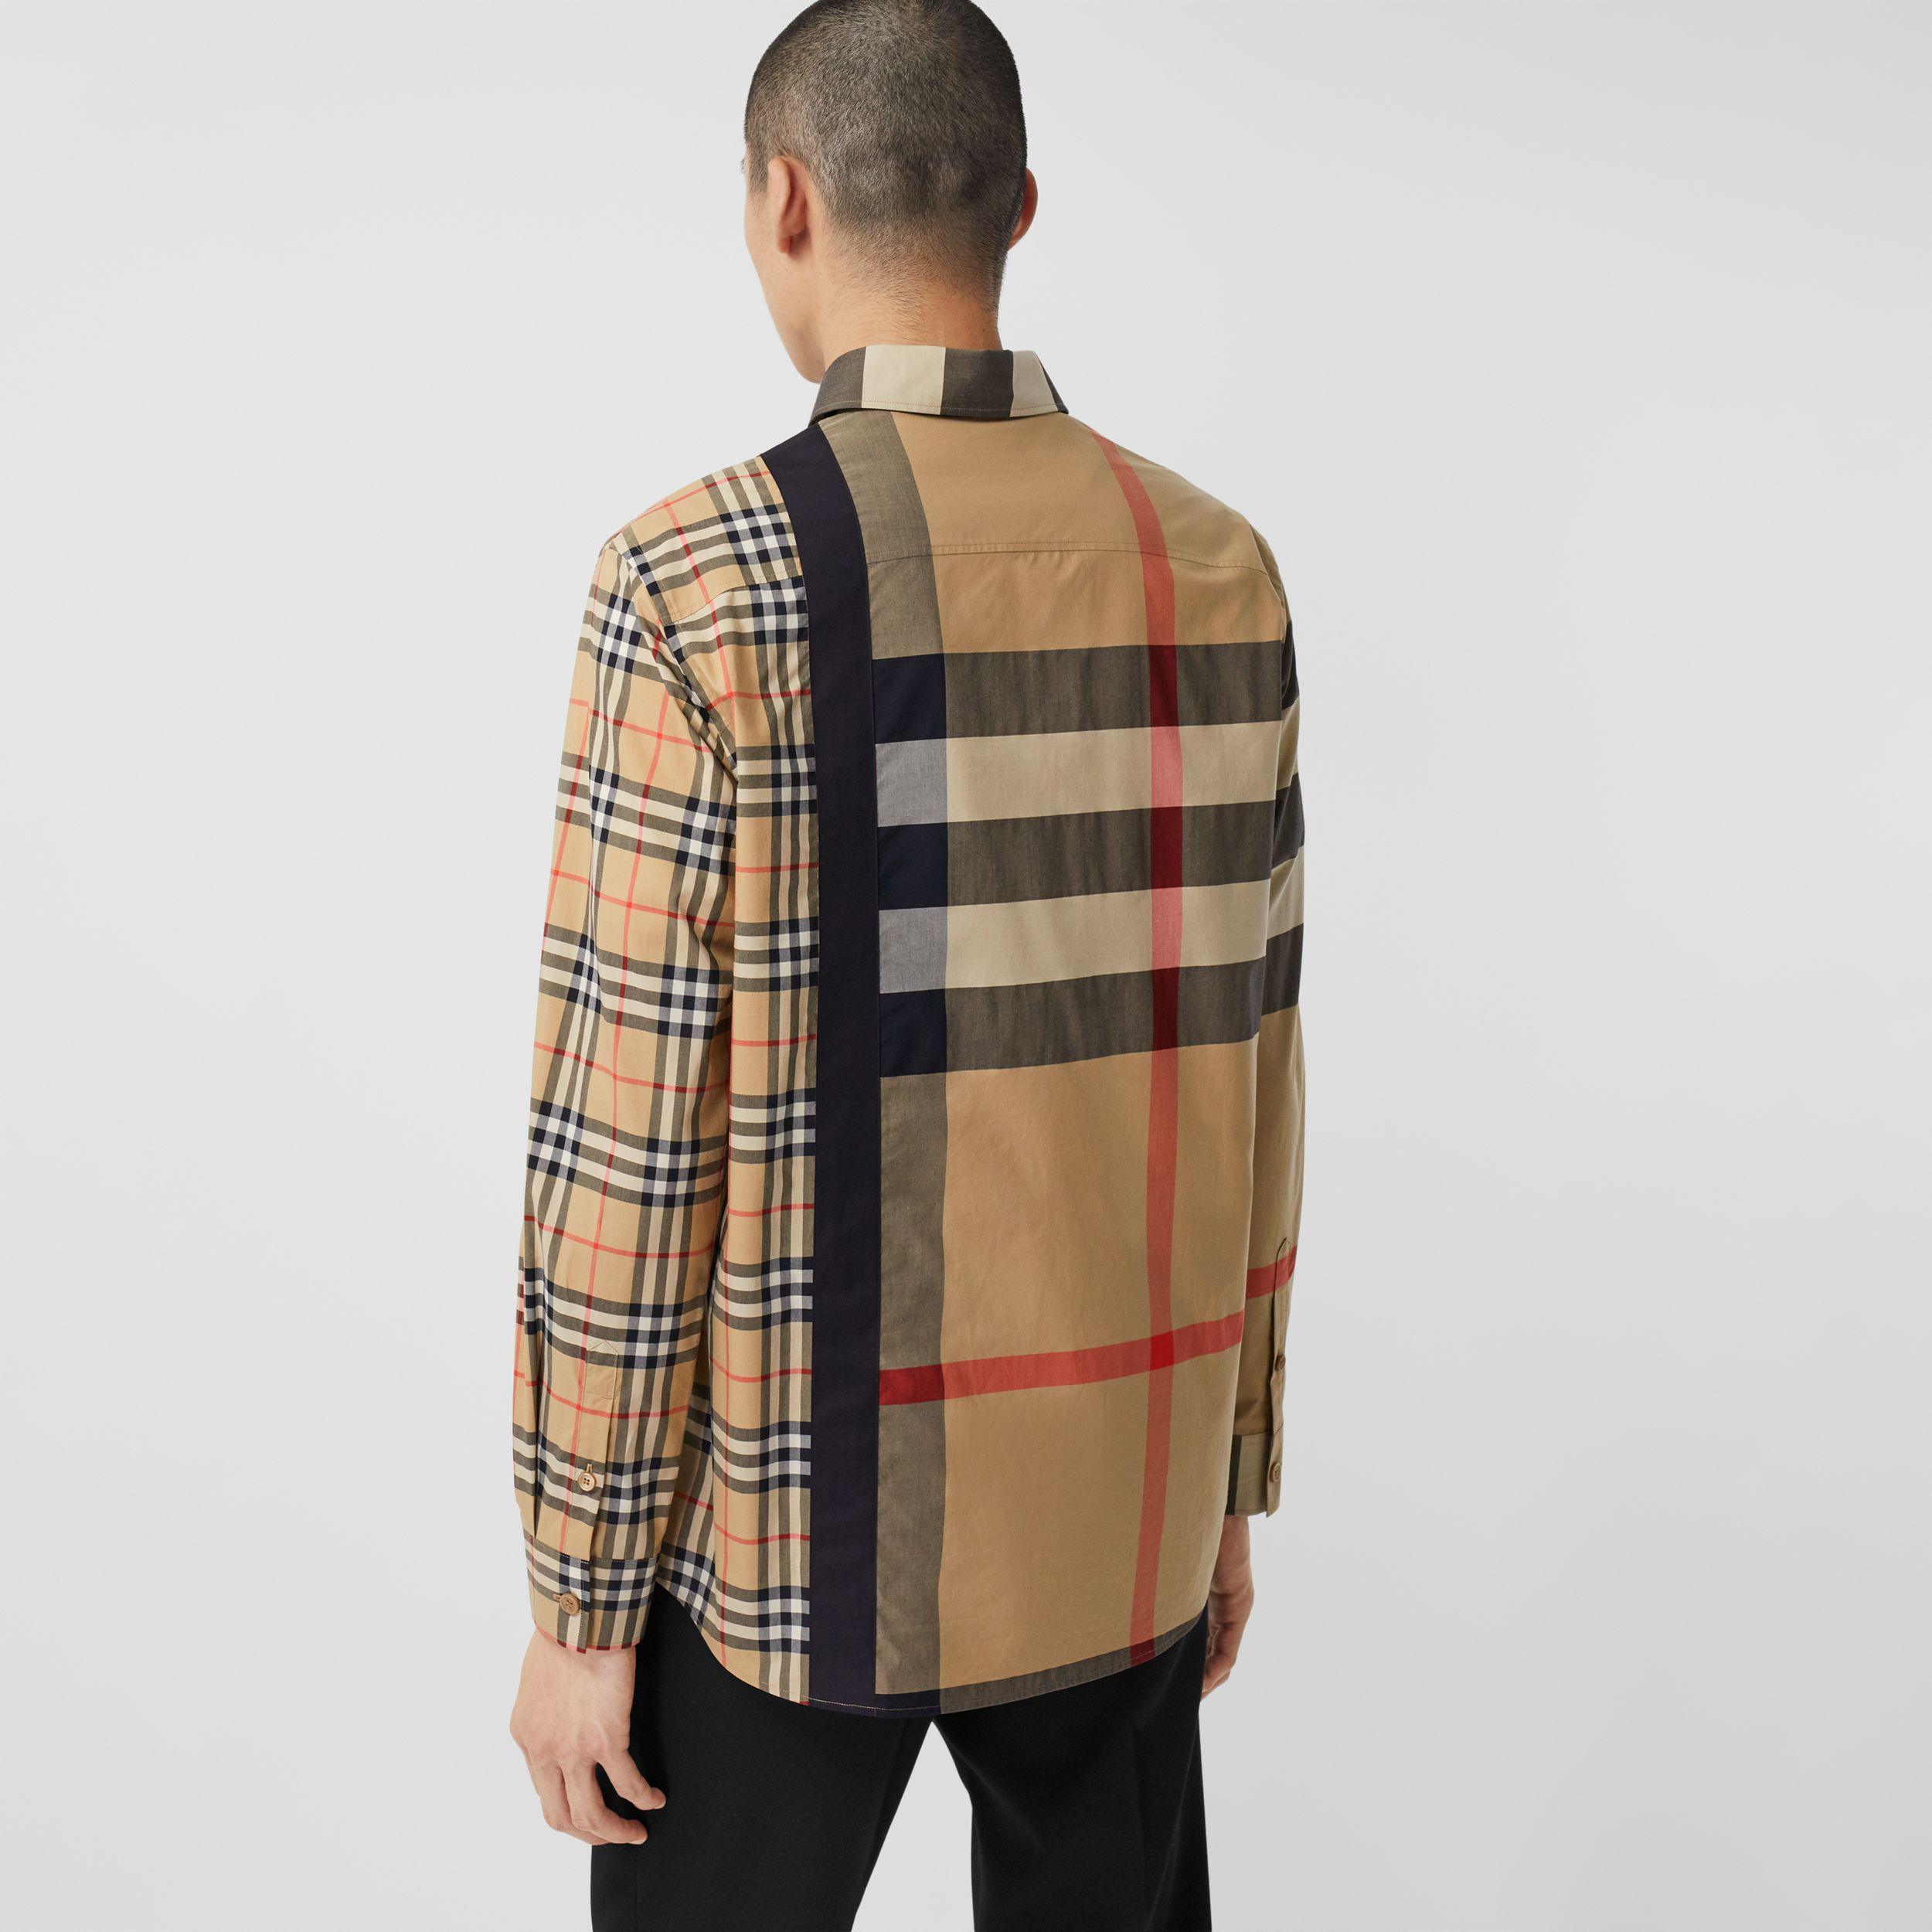 Logo Print Patchwork Check Cotton Oversized Shirt in Archive Beige - Men | Burberry - 3